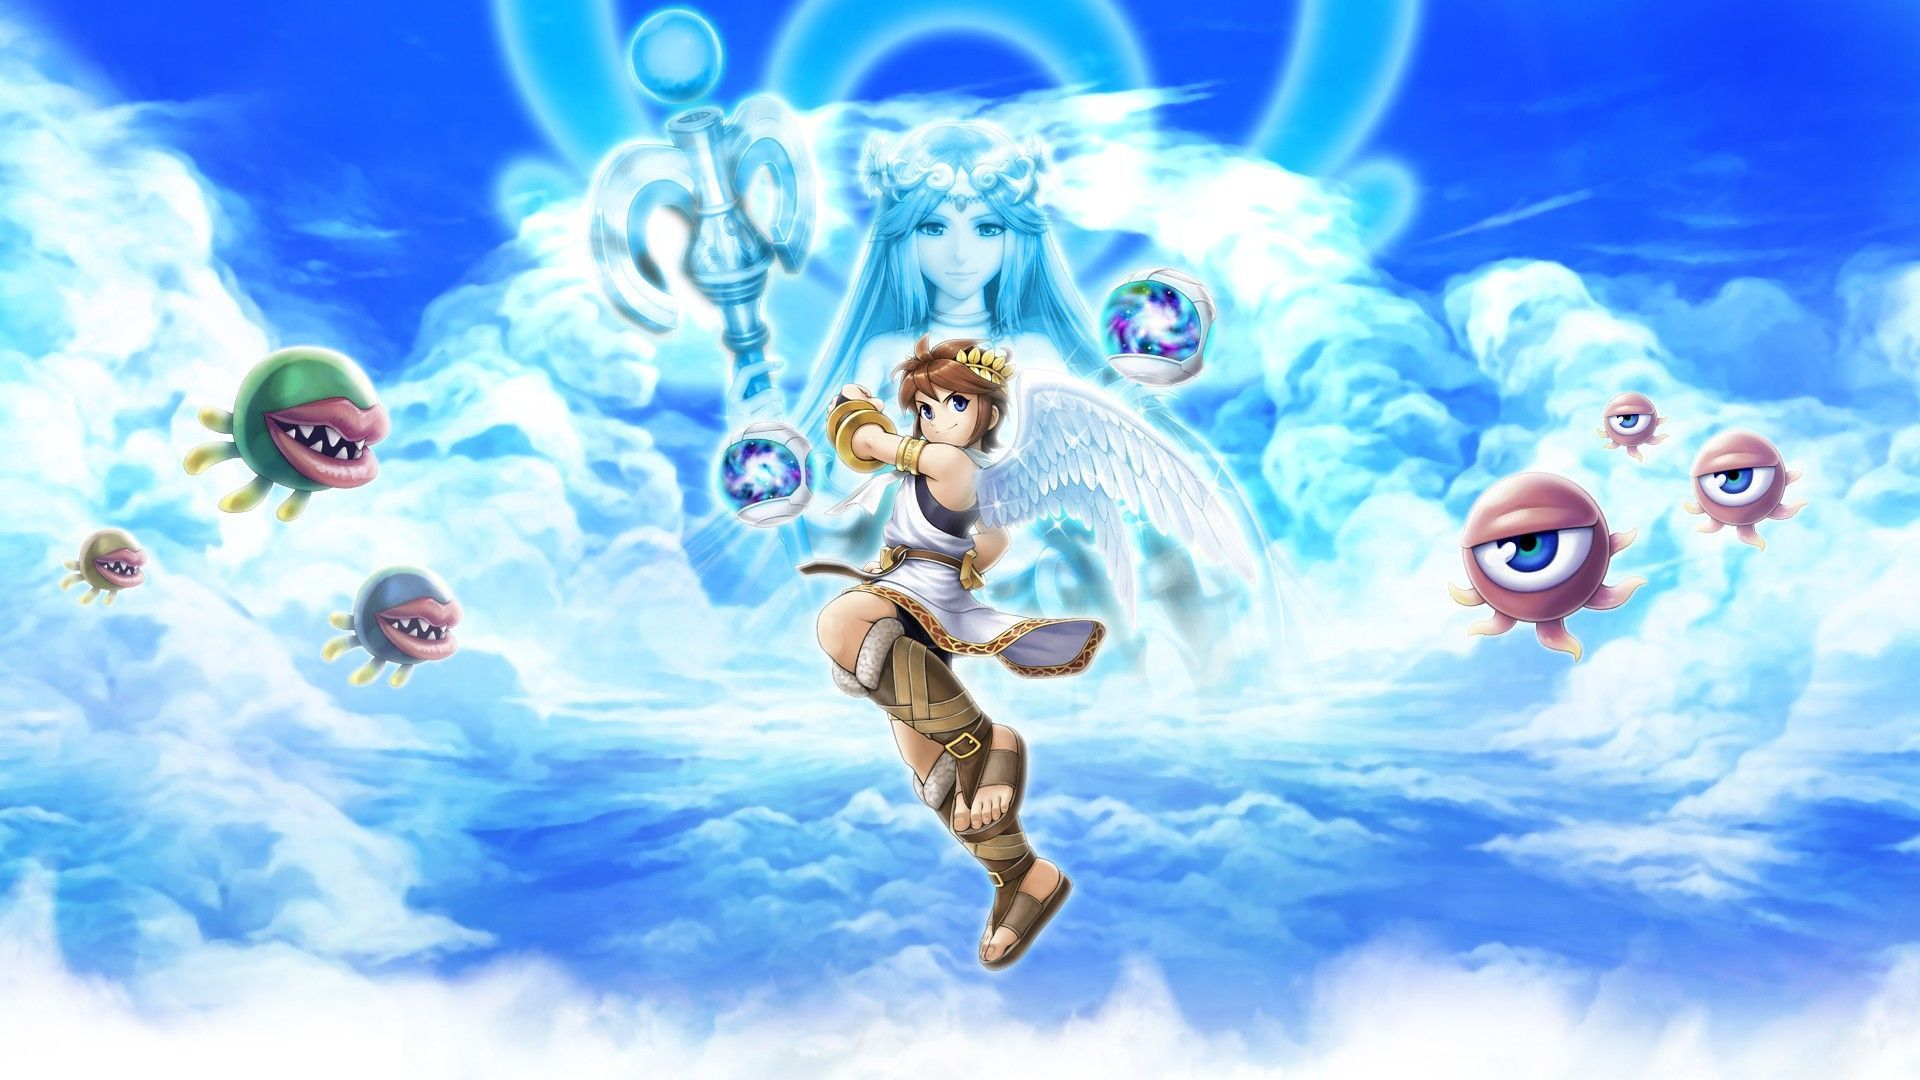 3 Kid Icarus Uprising Wallpapers Kid Icarus Uprising